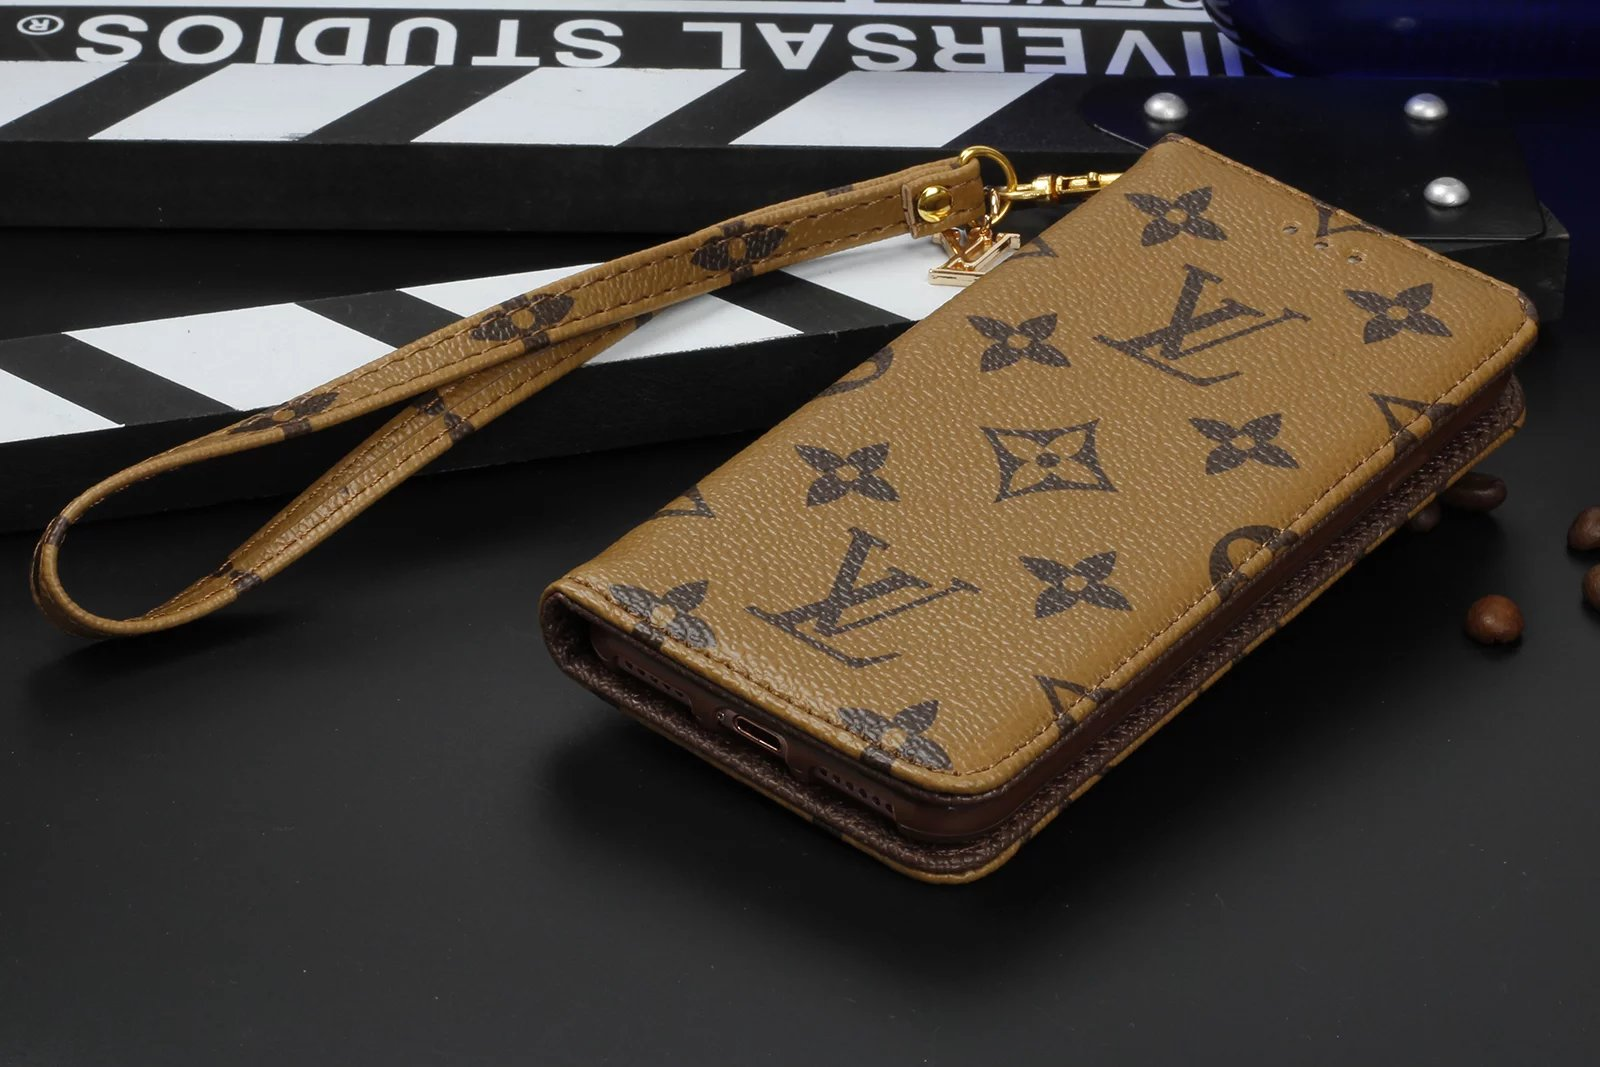 iphone hüllen günstig beste iphone hülle Louis Vuitton iphone 8 hüllen original iphone 8 hülle iphone ca8 individuell cover 8lbst erstellen iphone silikon ca8 iphone 8 hülle lila lederhülle iphone 8